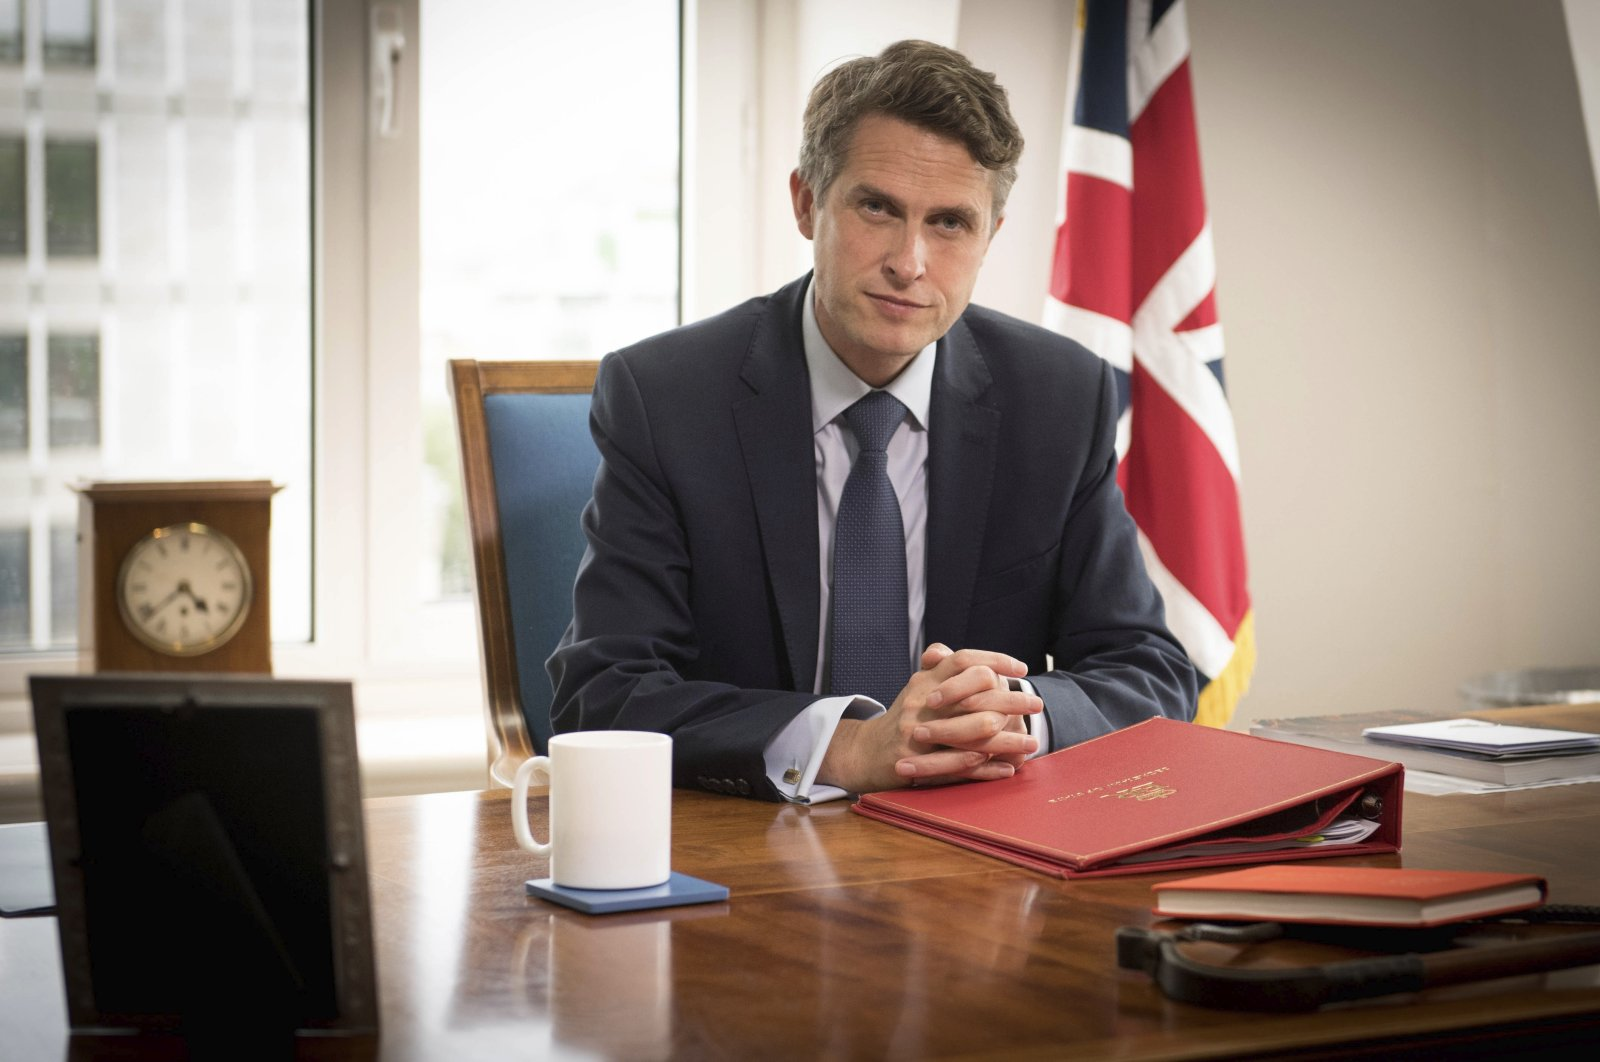 Britain's Secretary of State for Education Gavin Williamson poses for a photo in his office at the Department of Education in London, following the announcement that A-level and GCSE school results in England will now be based on teachers' assessments of their students, Aug. 17, 2020. (AP Photo)